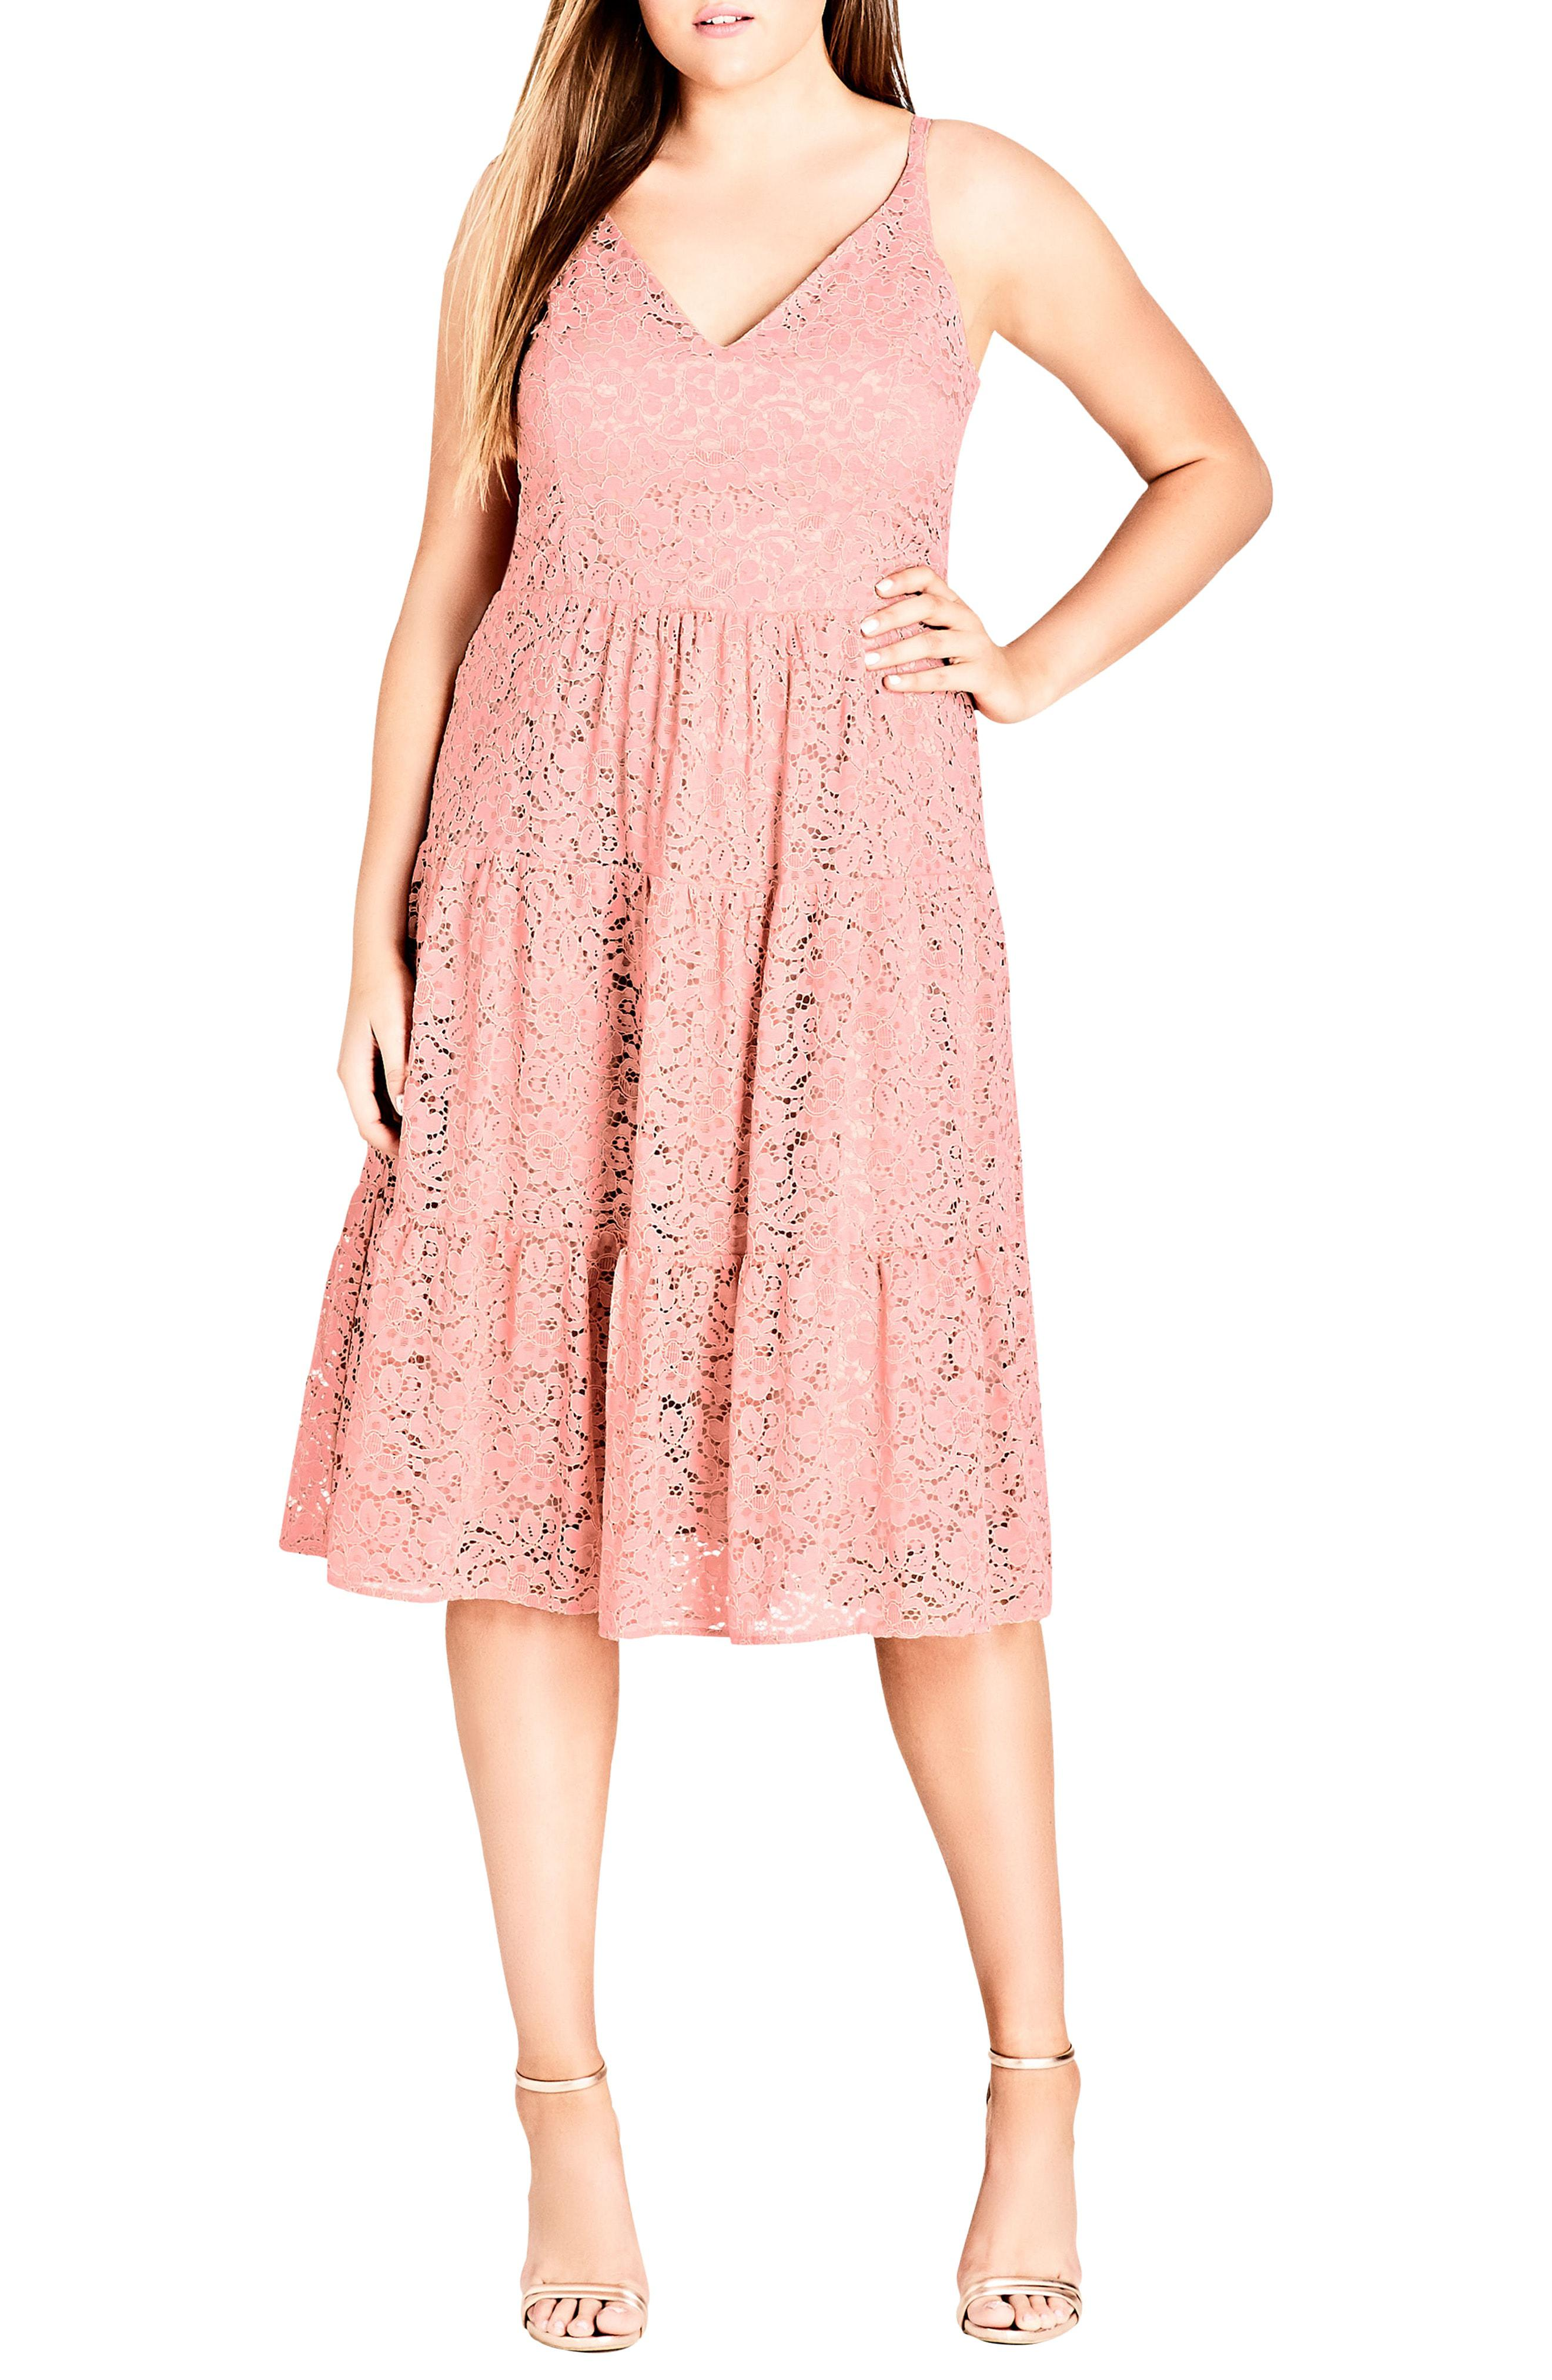 43ae455d744 Lyst - City Chic Sweet Kiss Dress in Pink - Save 50%